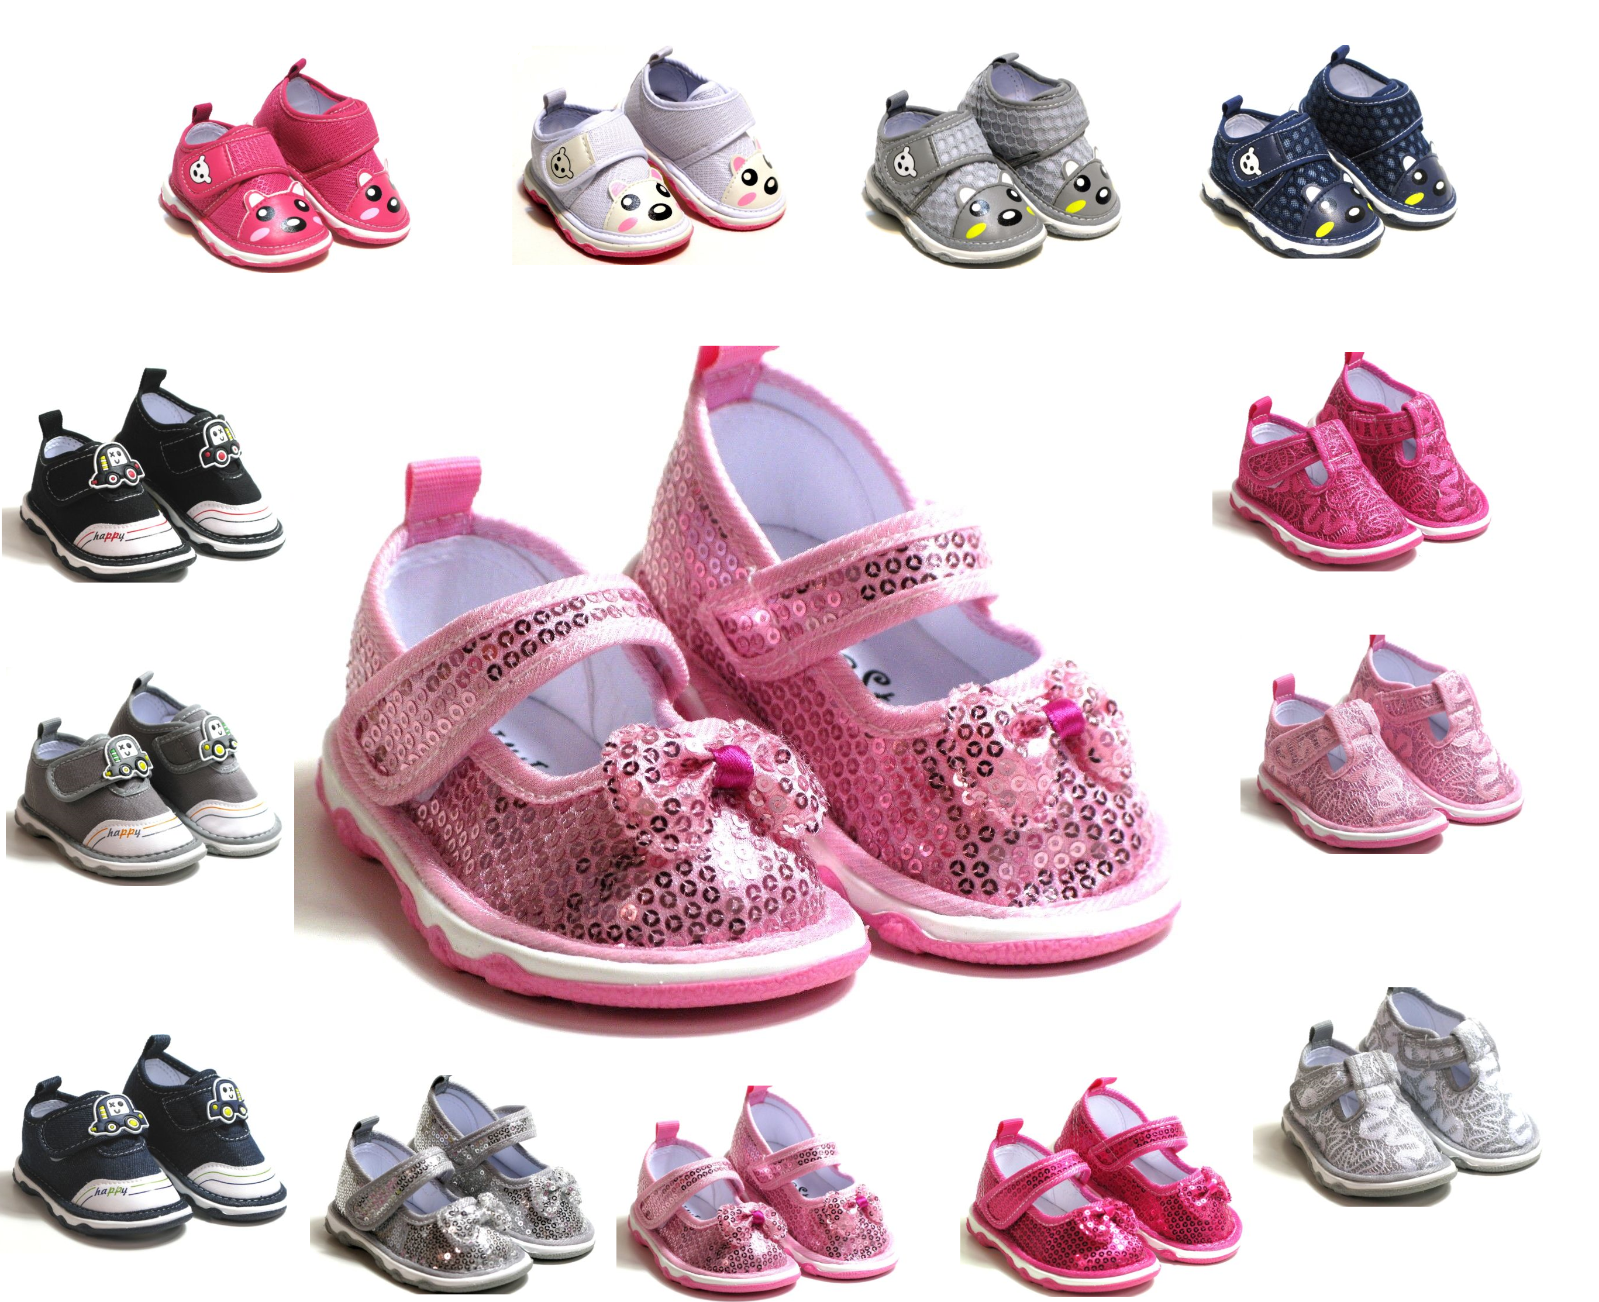 New Adorable Baby Toddler Boys Girls Squeaky Shoes 4 Colors Size